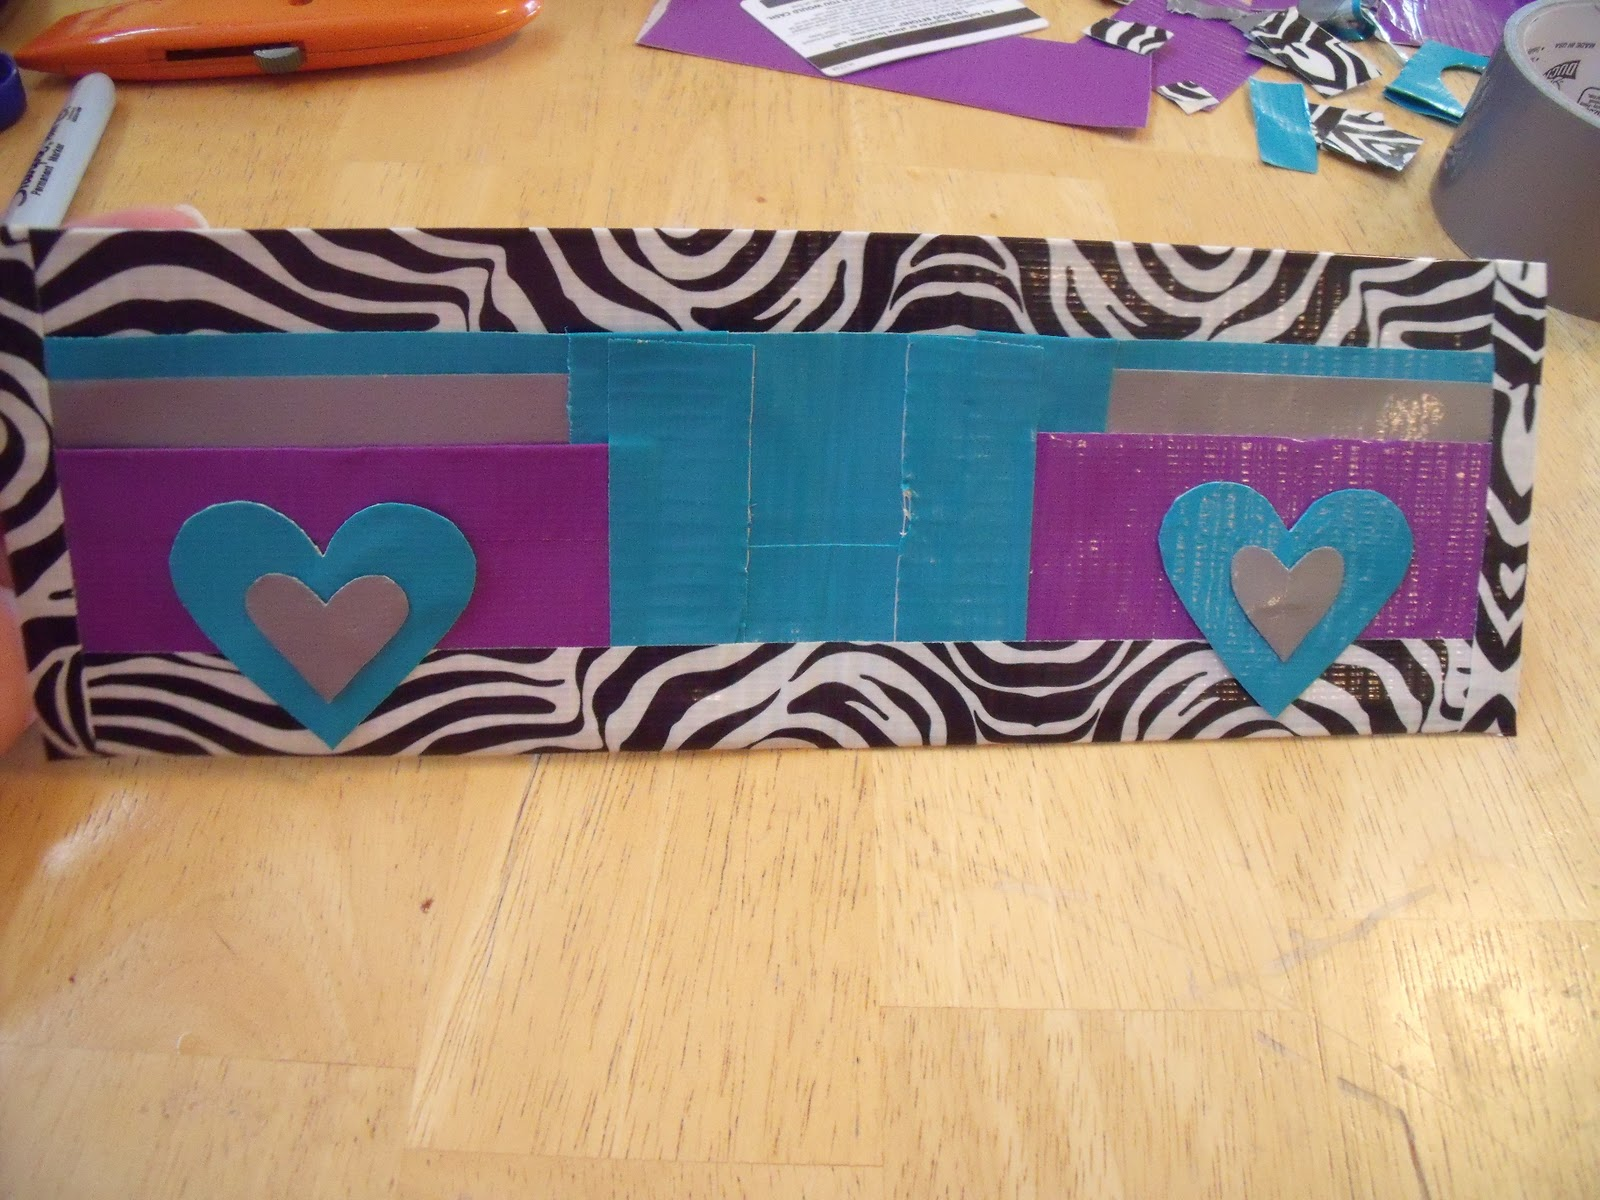 Duct Tape Daisy: Duct Tape Creations |Duct Tape Creations